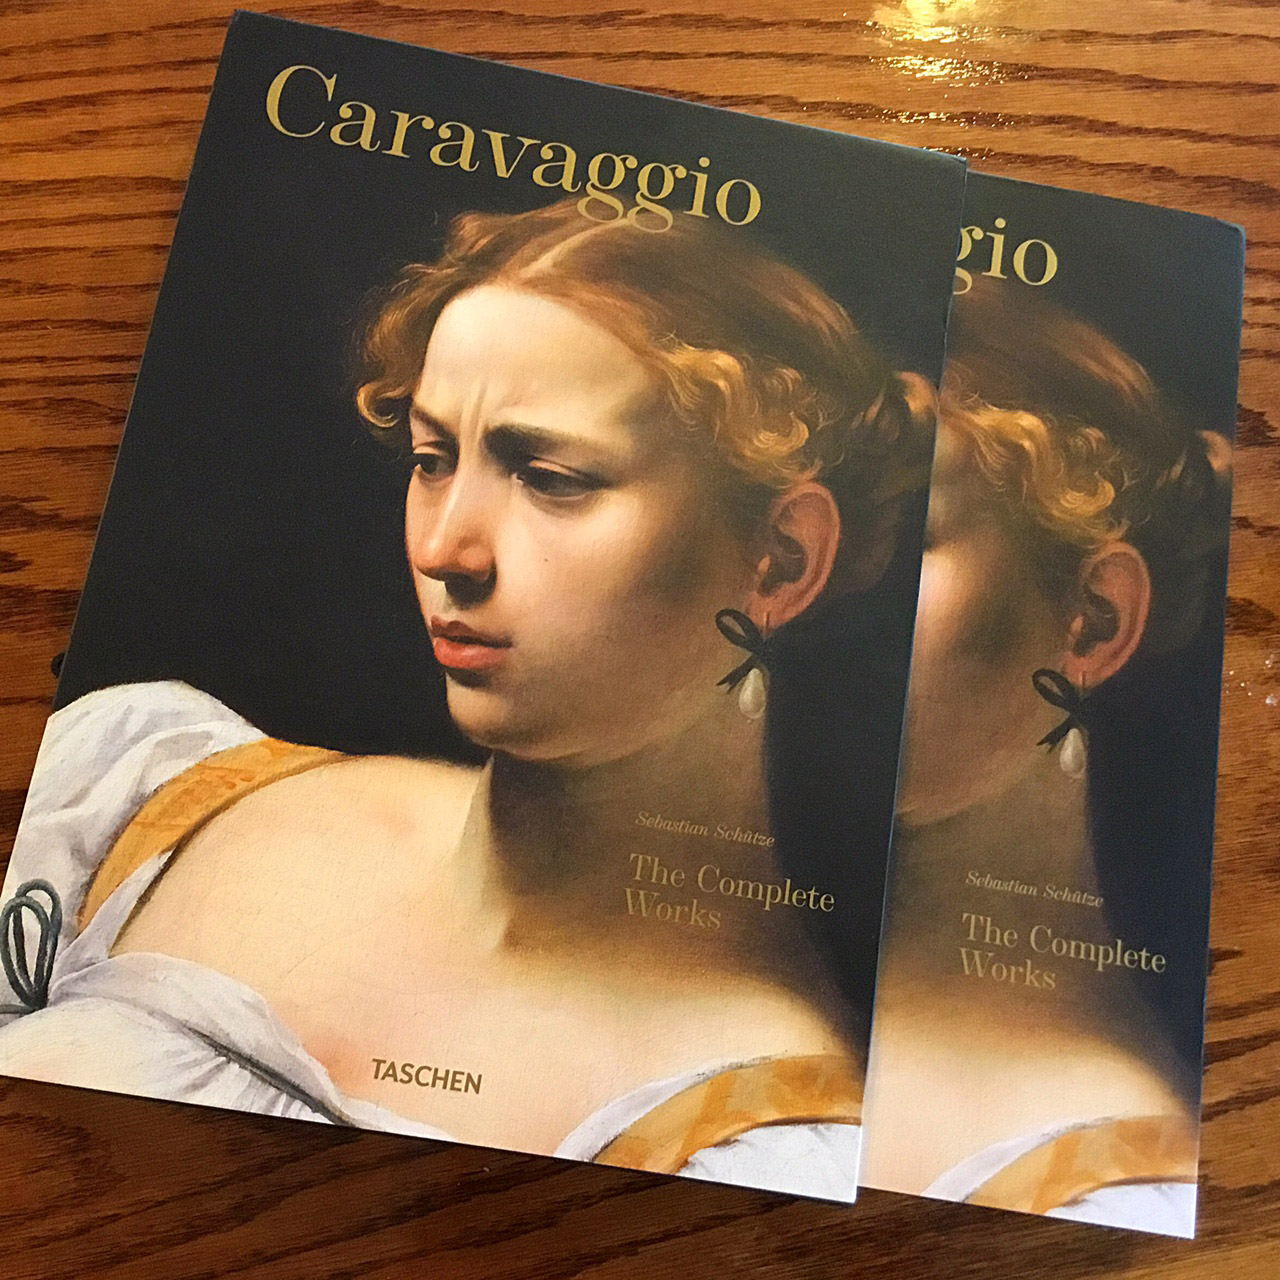 Caravaggio to the Rescue!